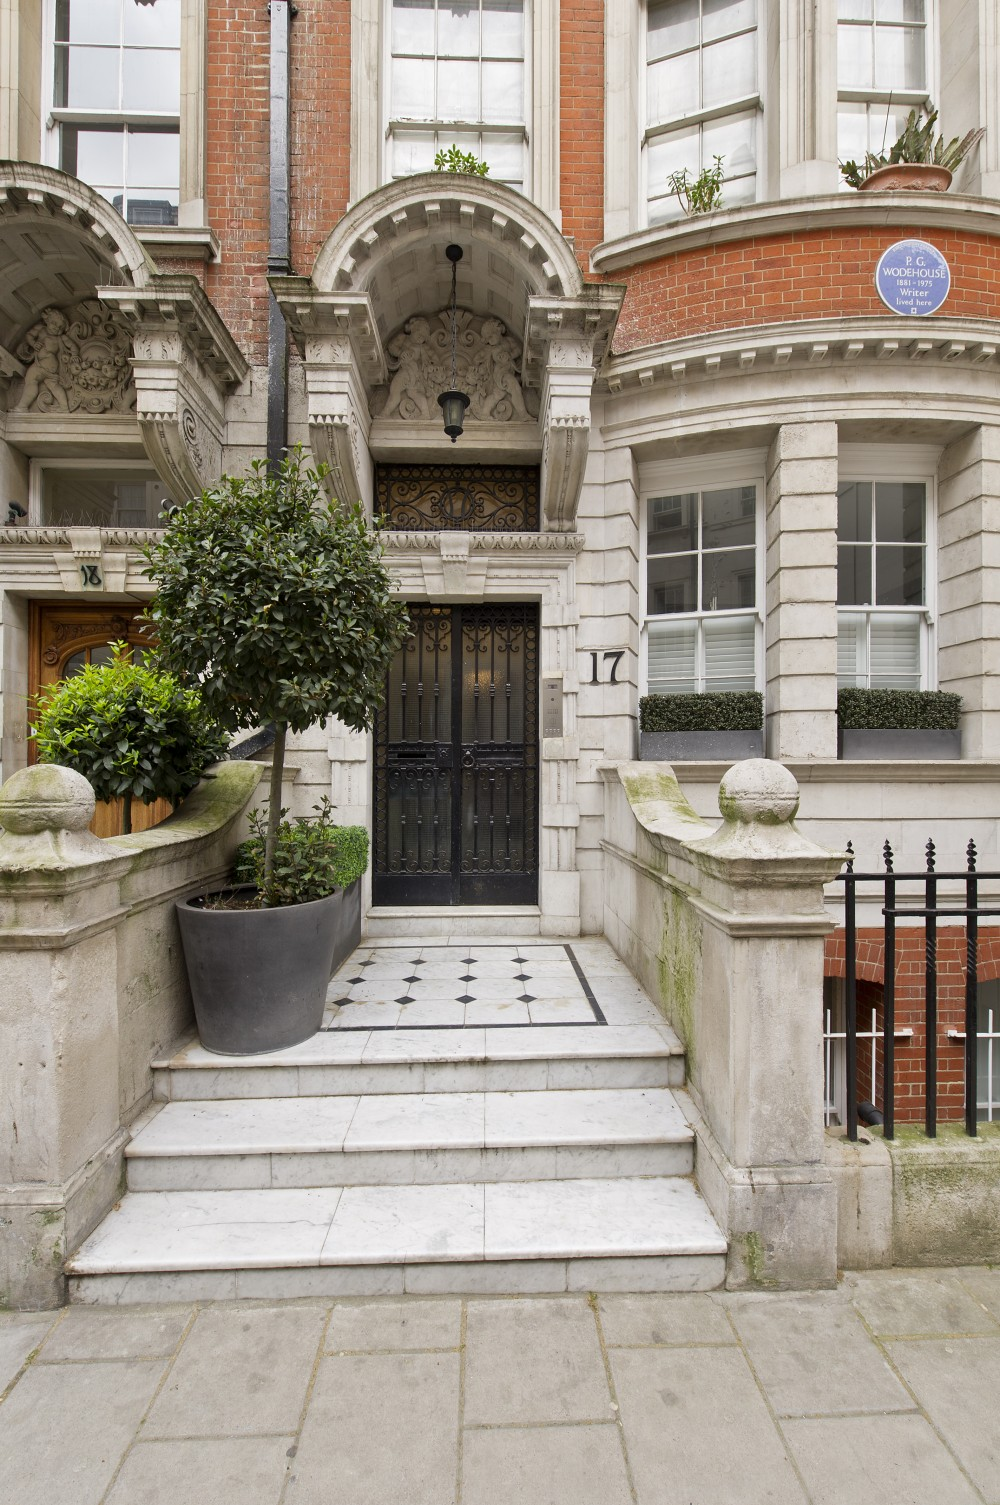 Images for Dunraven Street, London EAID: BID:mckee